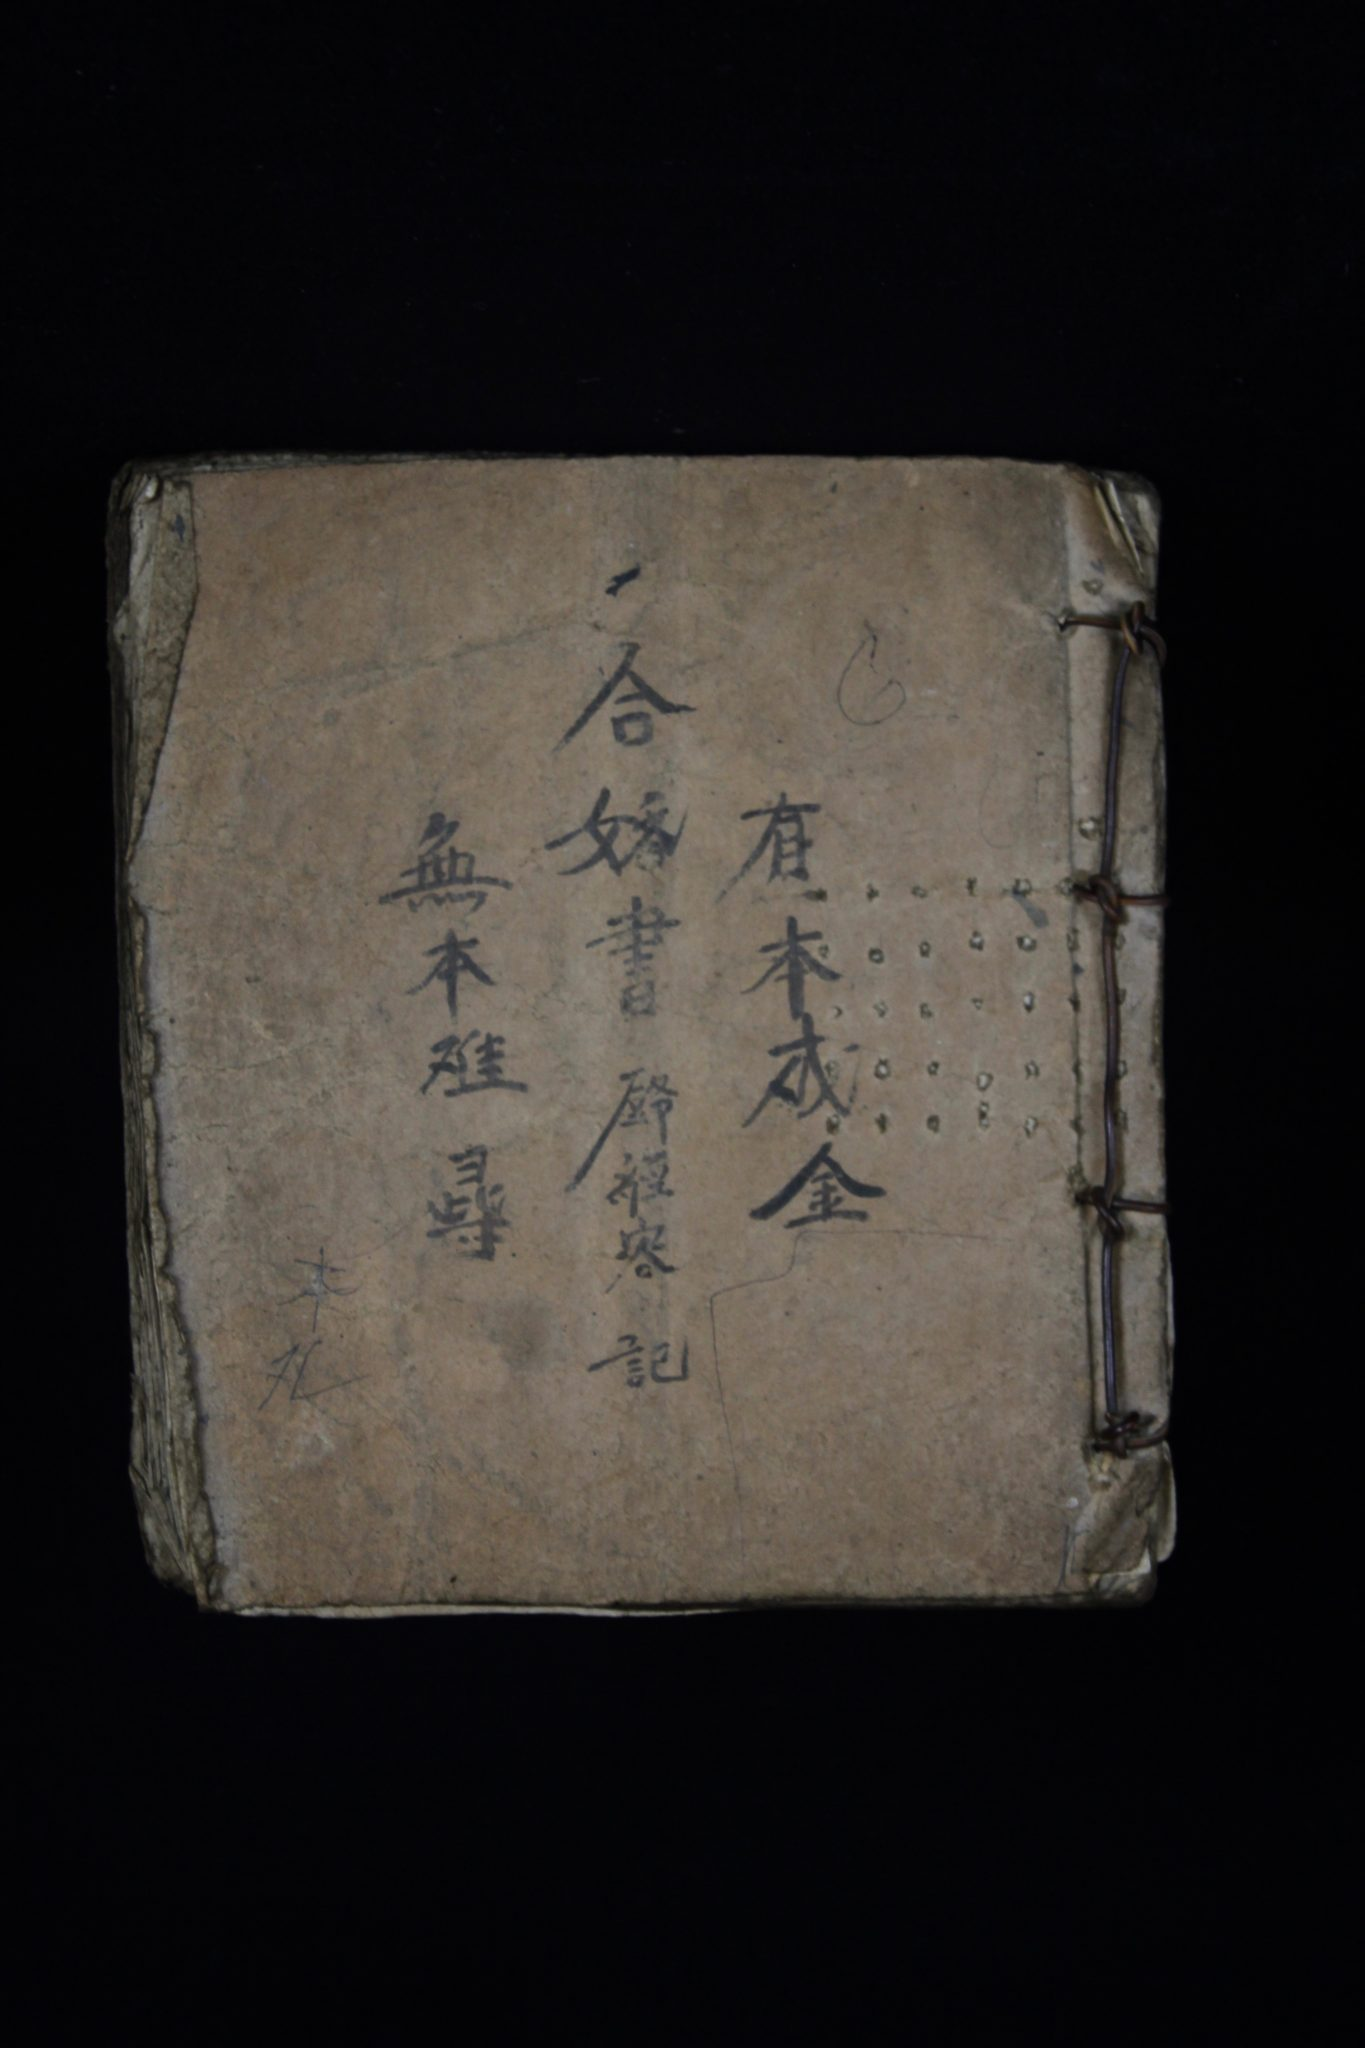 "Shaman's Personal Instruction Book, Cao Bang province, Vietnam, Early 20th c, Ink on handmade mulberry paper (tapa), Written in Nom (Chinese characters adapted to Vietnamese), books are an integral part of a shaman's repertoire. They range from explanations of various rituals and use of objects, to astrology, history, songs, laws, etiquette, children's tales, hunting practices, formulas, spells and Feng Shui. Shaman make their own books to help store their knowledge therefore no two are alike and a high level shaman will have a large library. 9 ½"" x 8 ½"" x ¾"", $850."